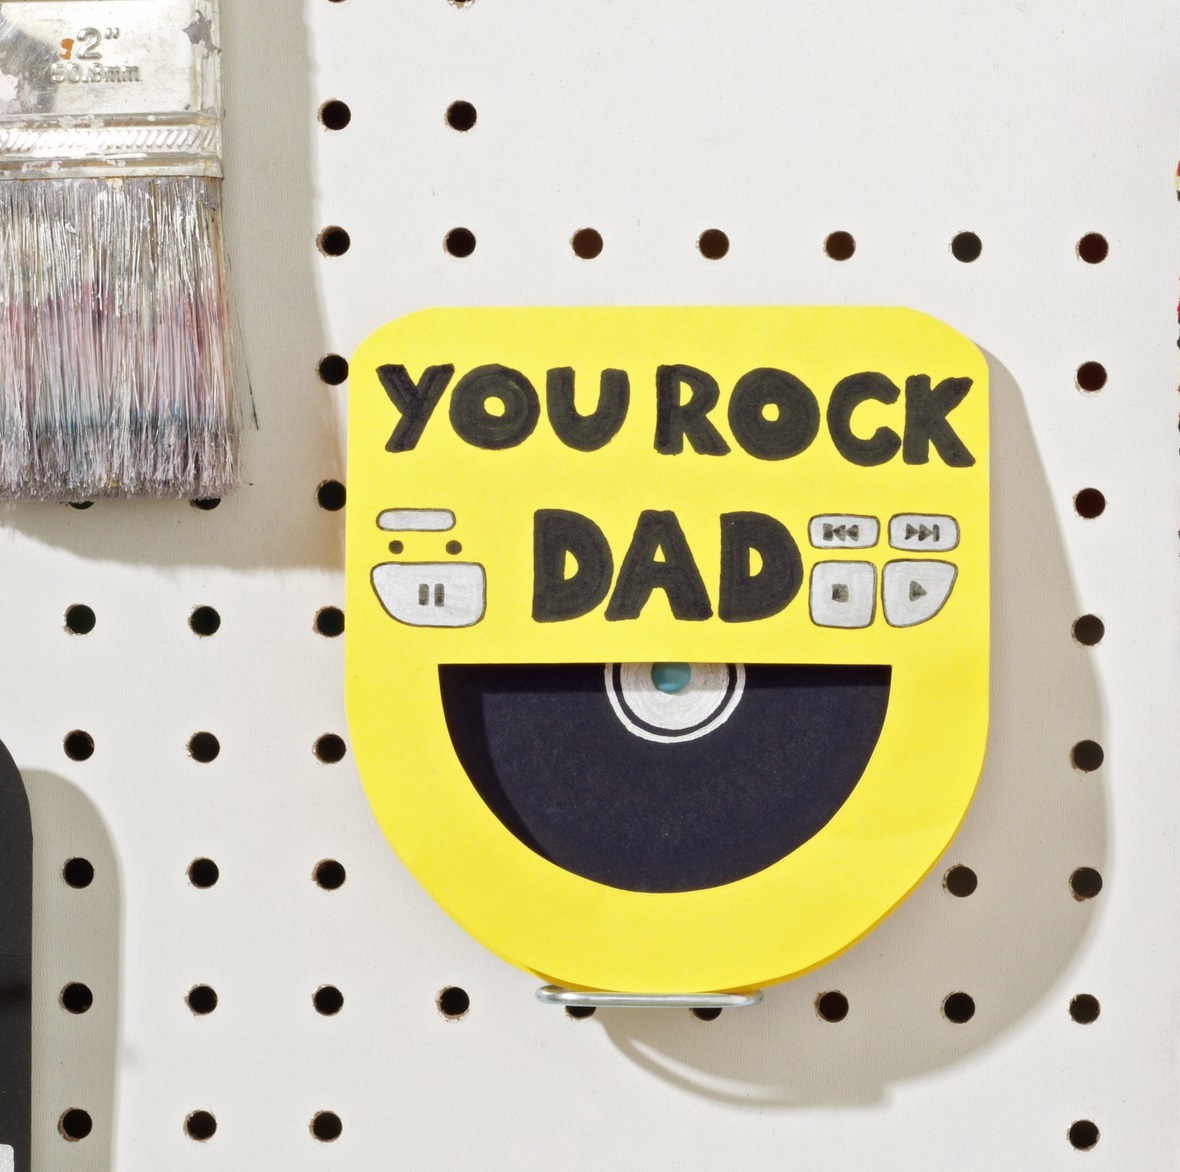 Birthday Card Ideas For Dad From Kids Fathers Day Crafts For Kids 21 Too Cute Gift Ideas For Dad Parents